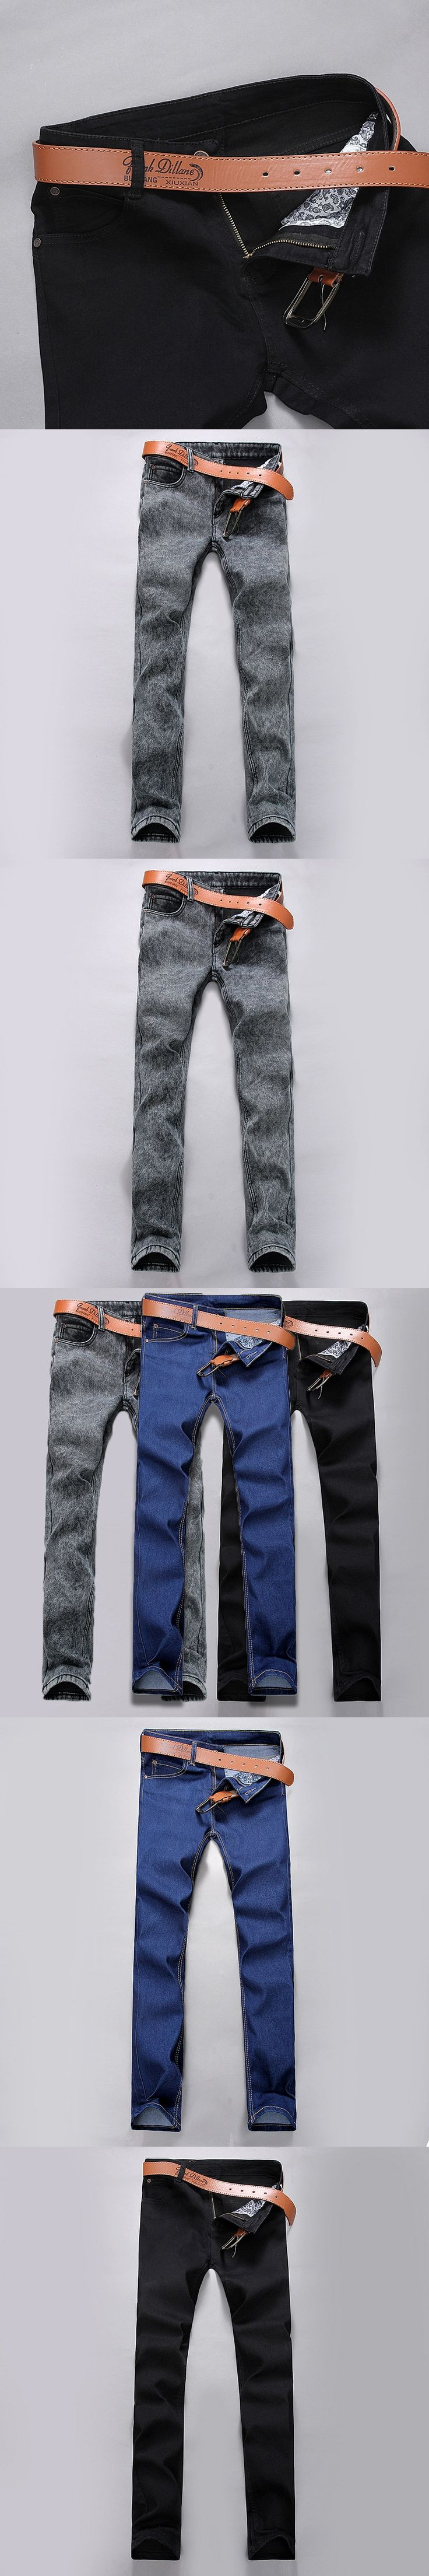 pantalones jeans hombre 2017 Mens jeans New Fashion Men Casual Slim Straight Jeans Long Trousers jean blanc homme pants